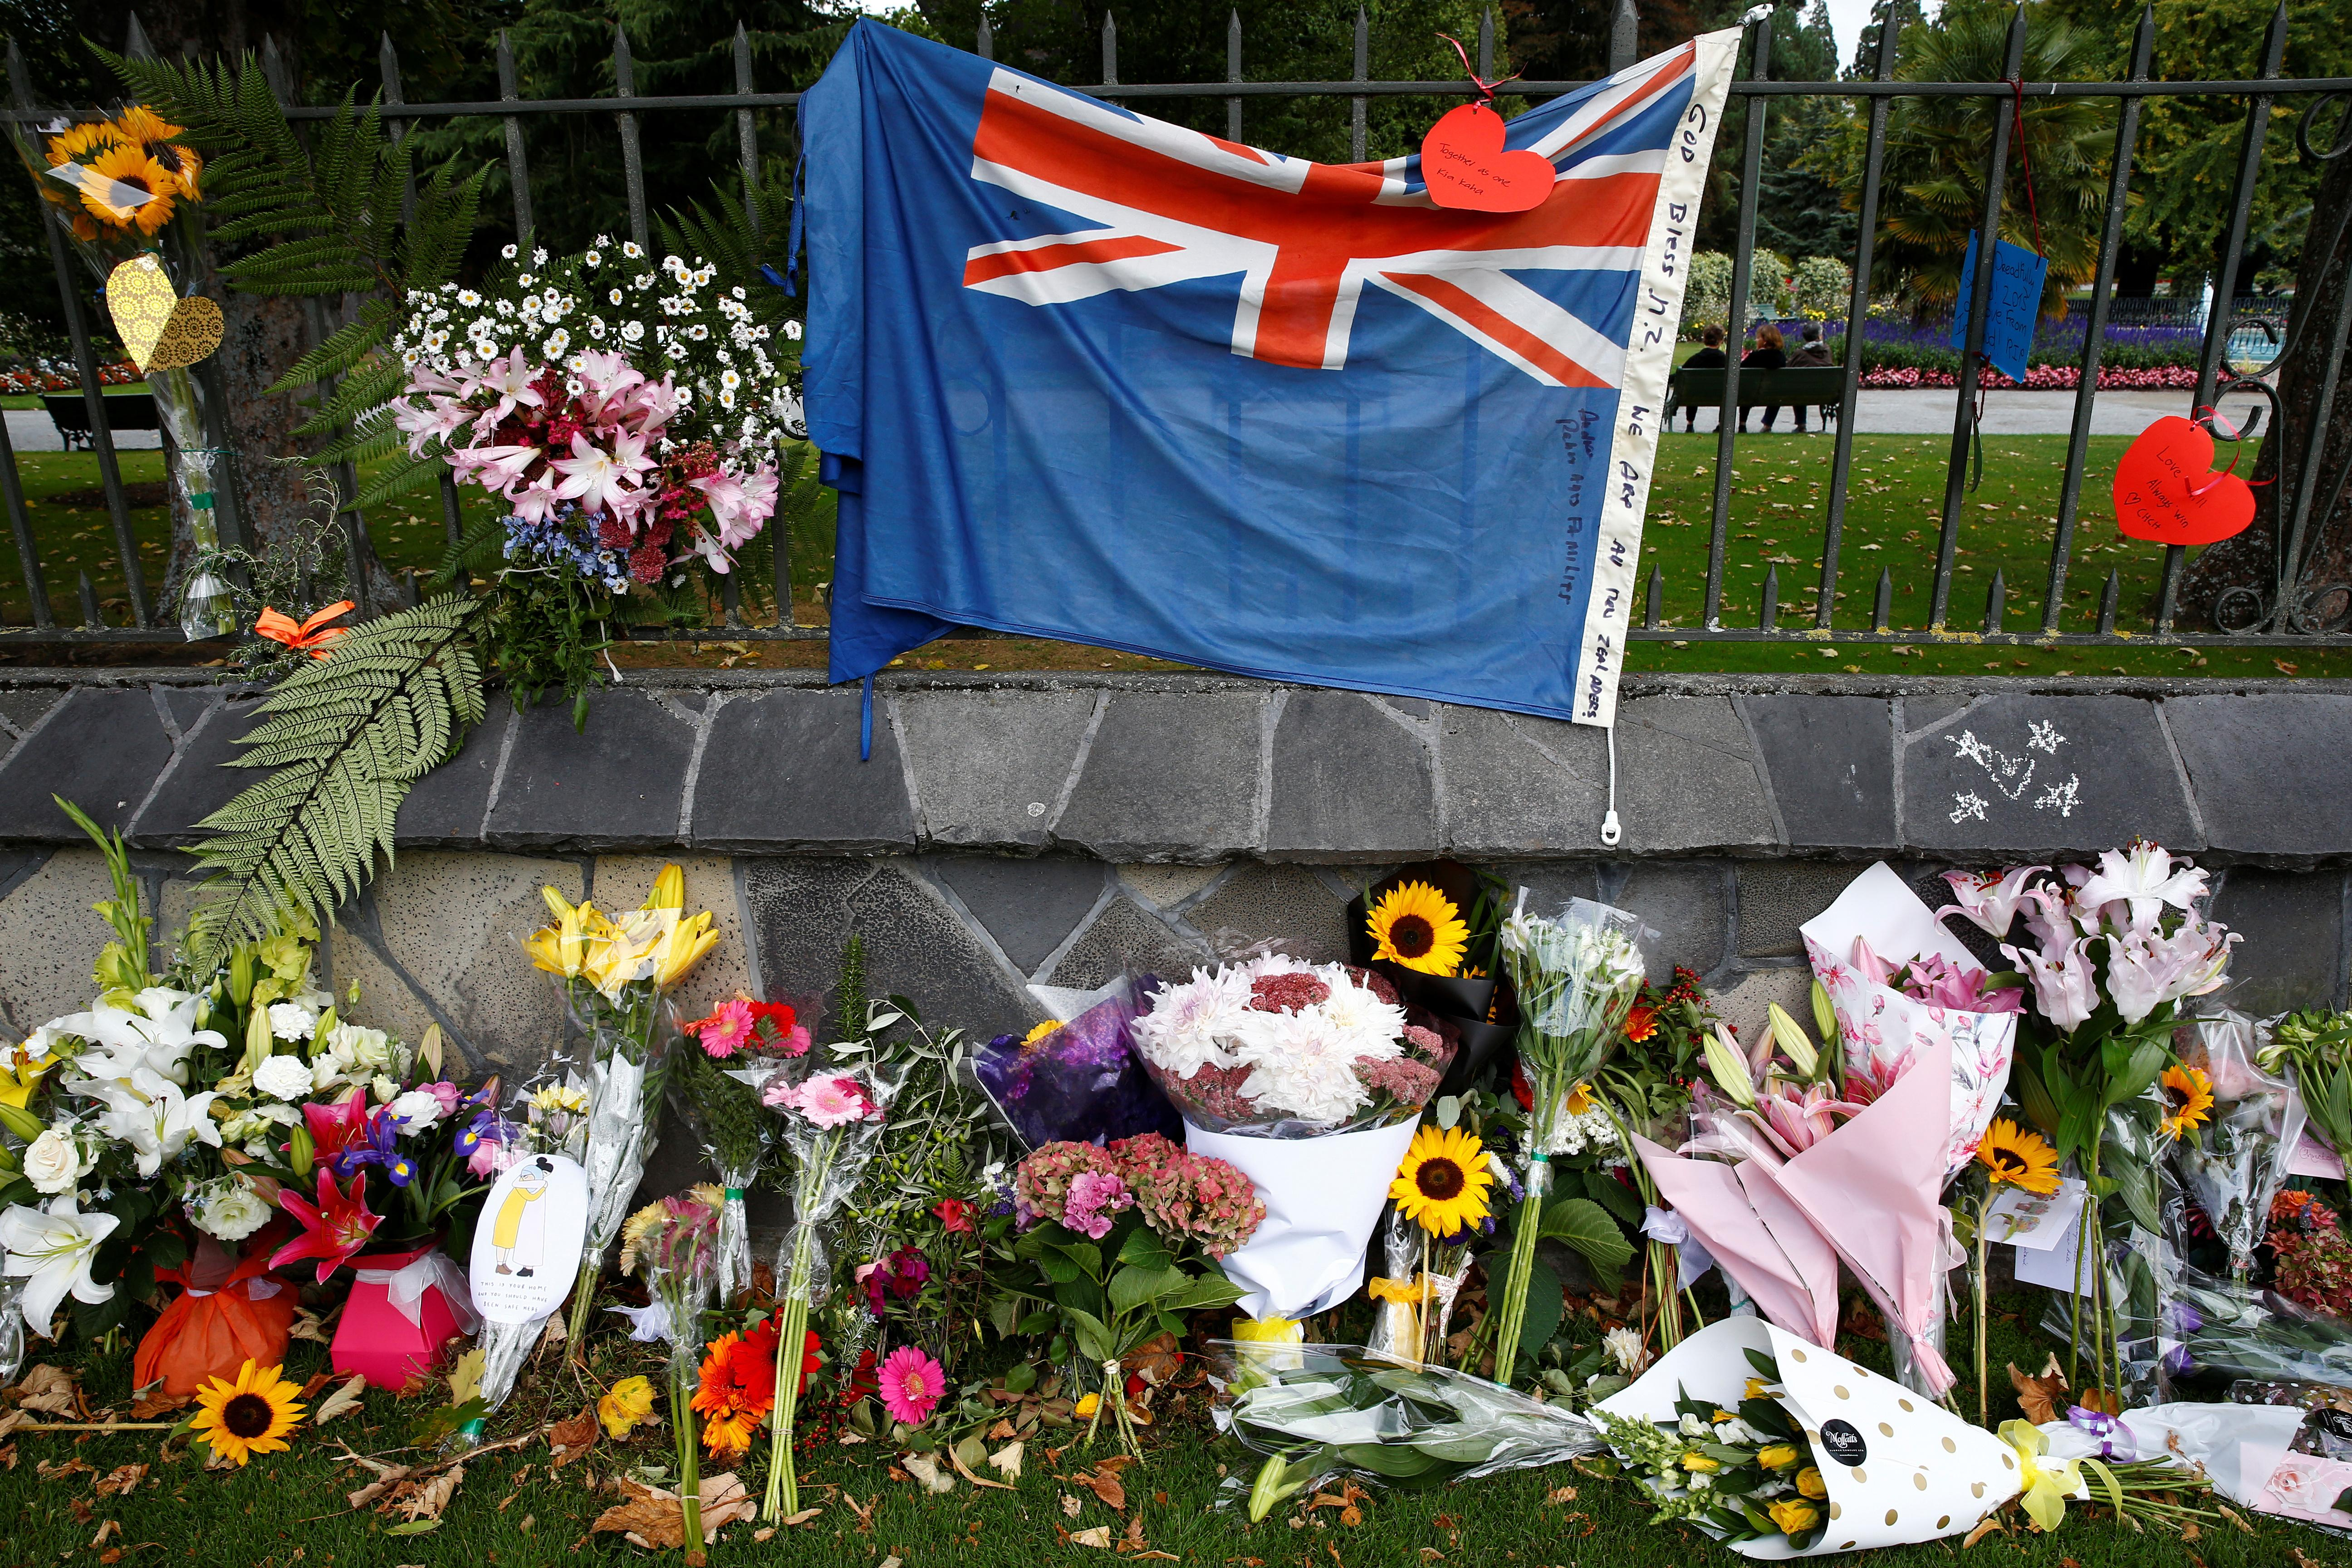 New Zealand votes to amend gun laws after Christchurch